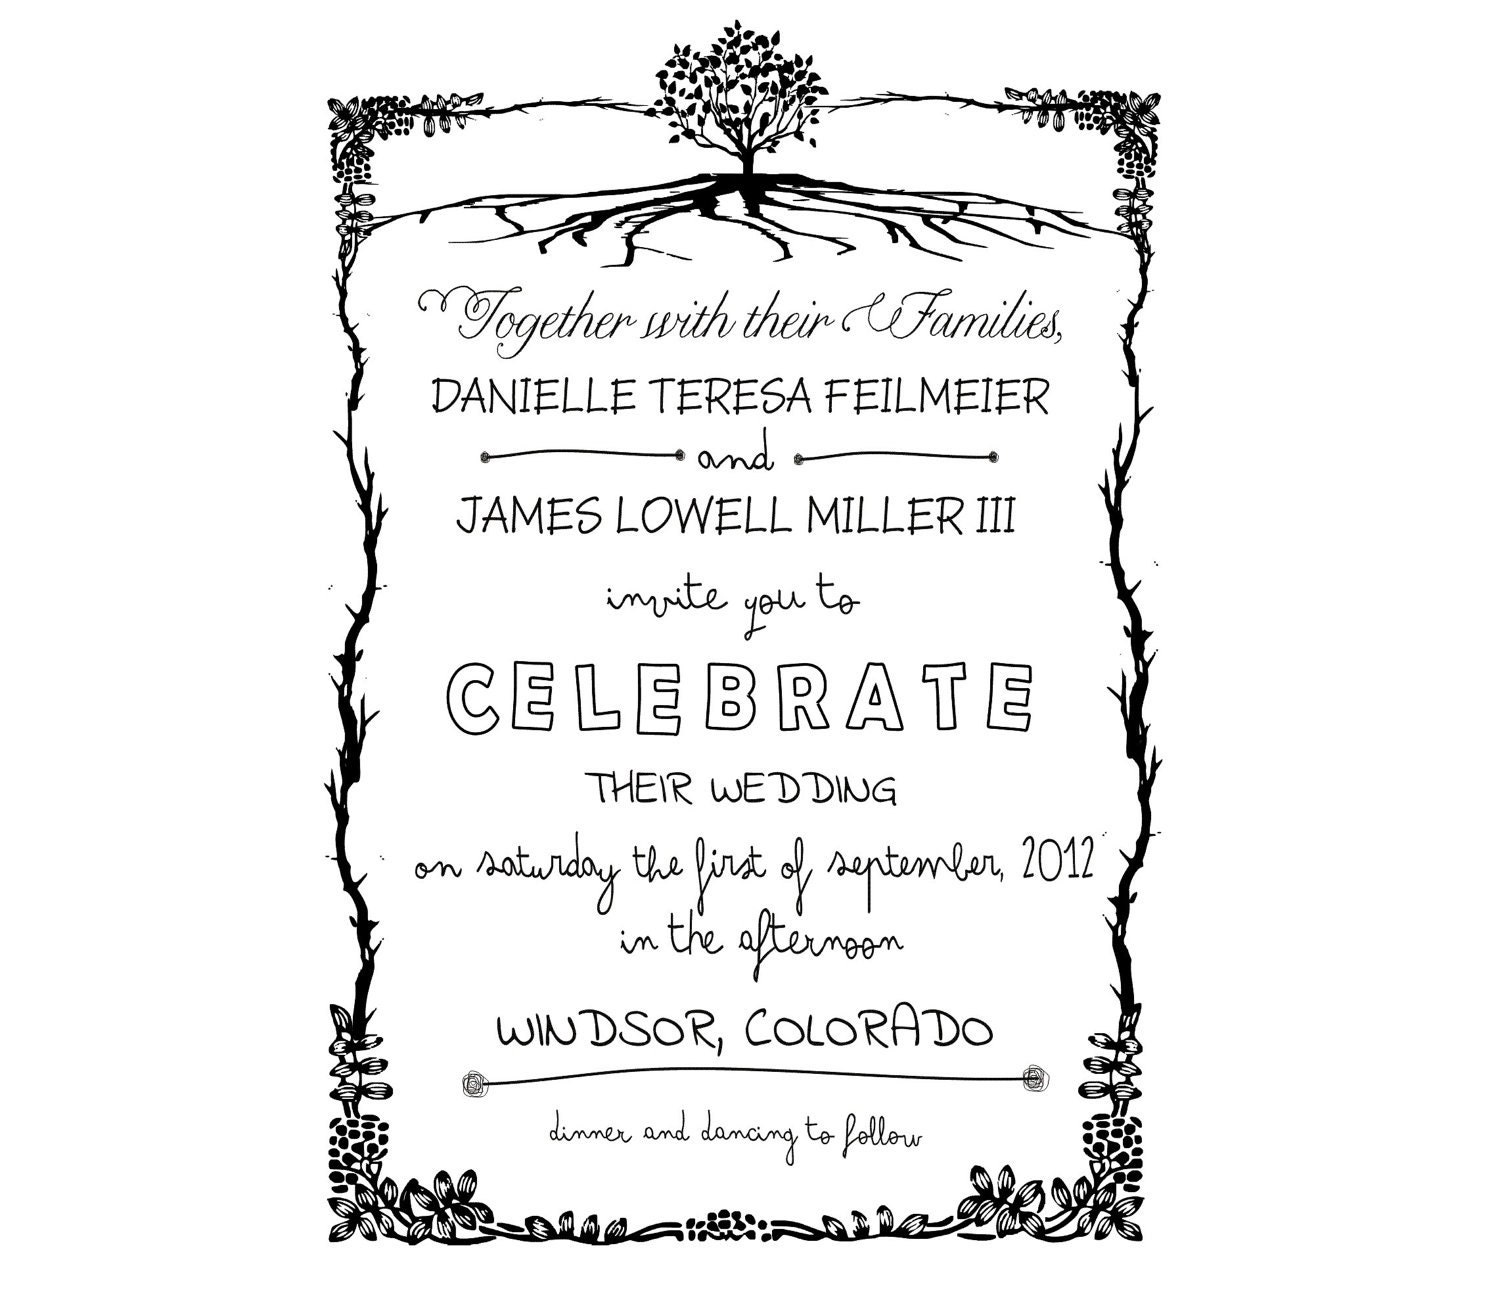 Stamps For Wedding Invitations: Rustic DIY Wedding Invitation Rubber Stamp SET By